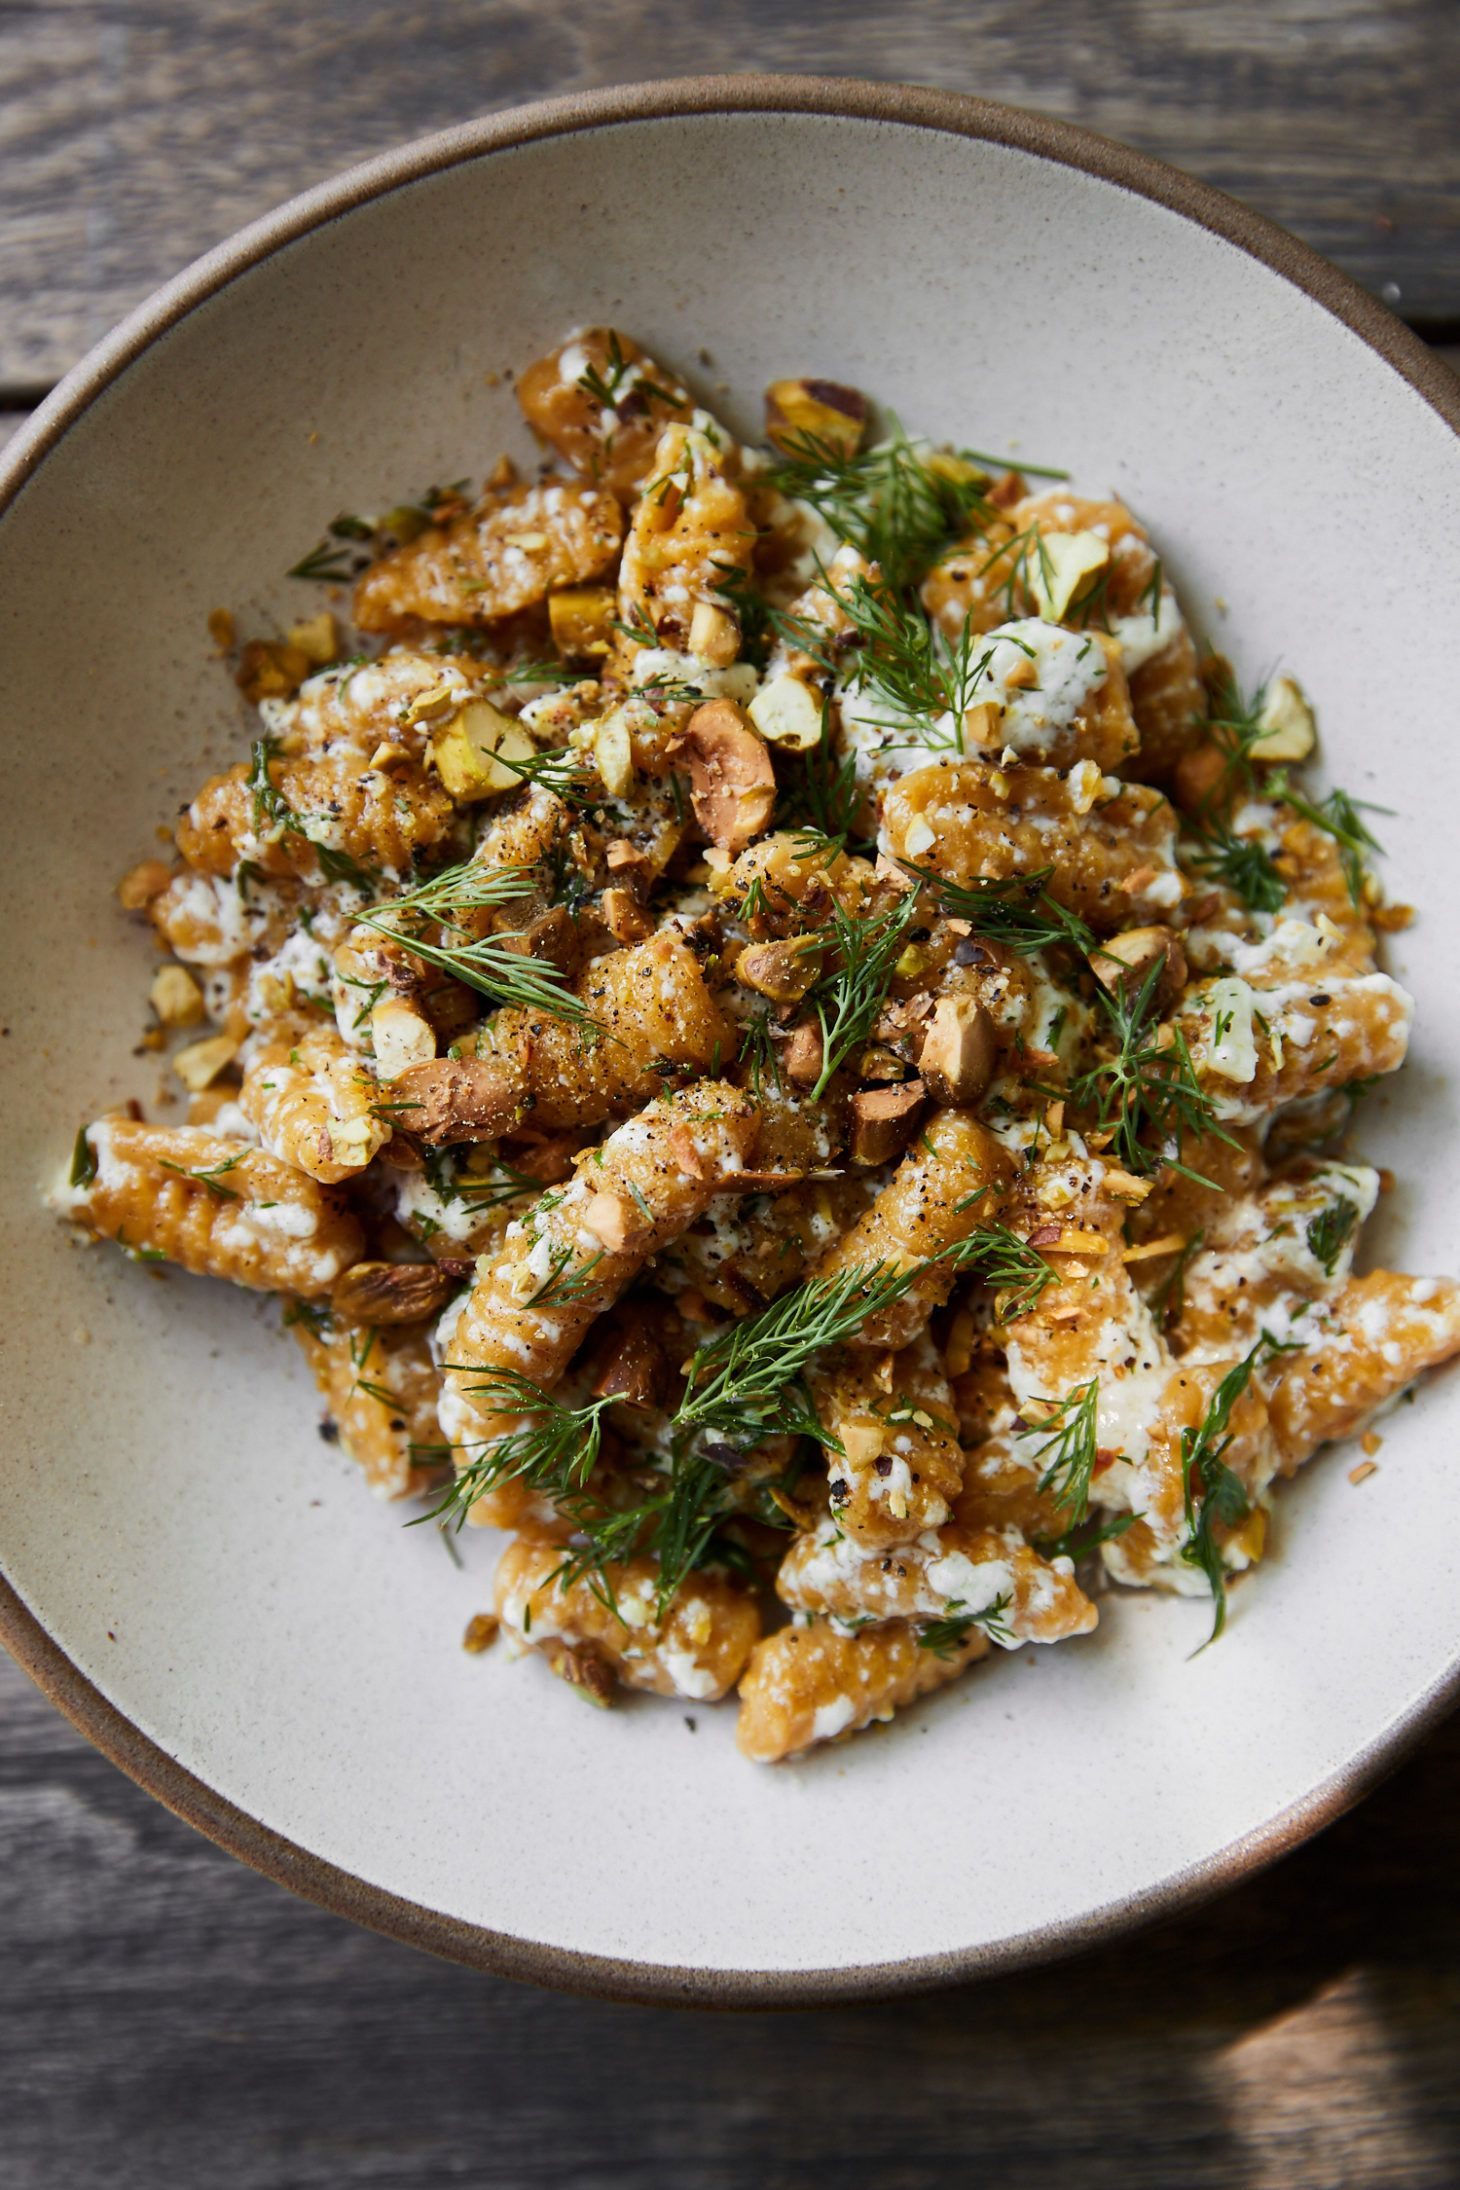 Carrot Cavatelli With Dill And Ricotta Naturally Recipe In 2020 Cavatelli Vegetarian Recipes Recipes